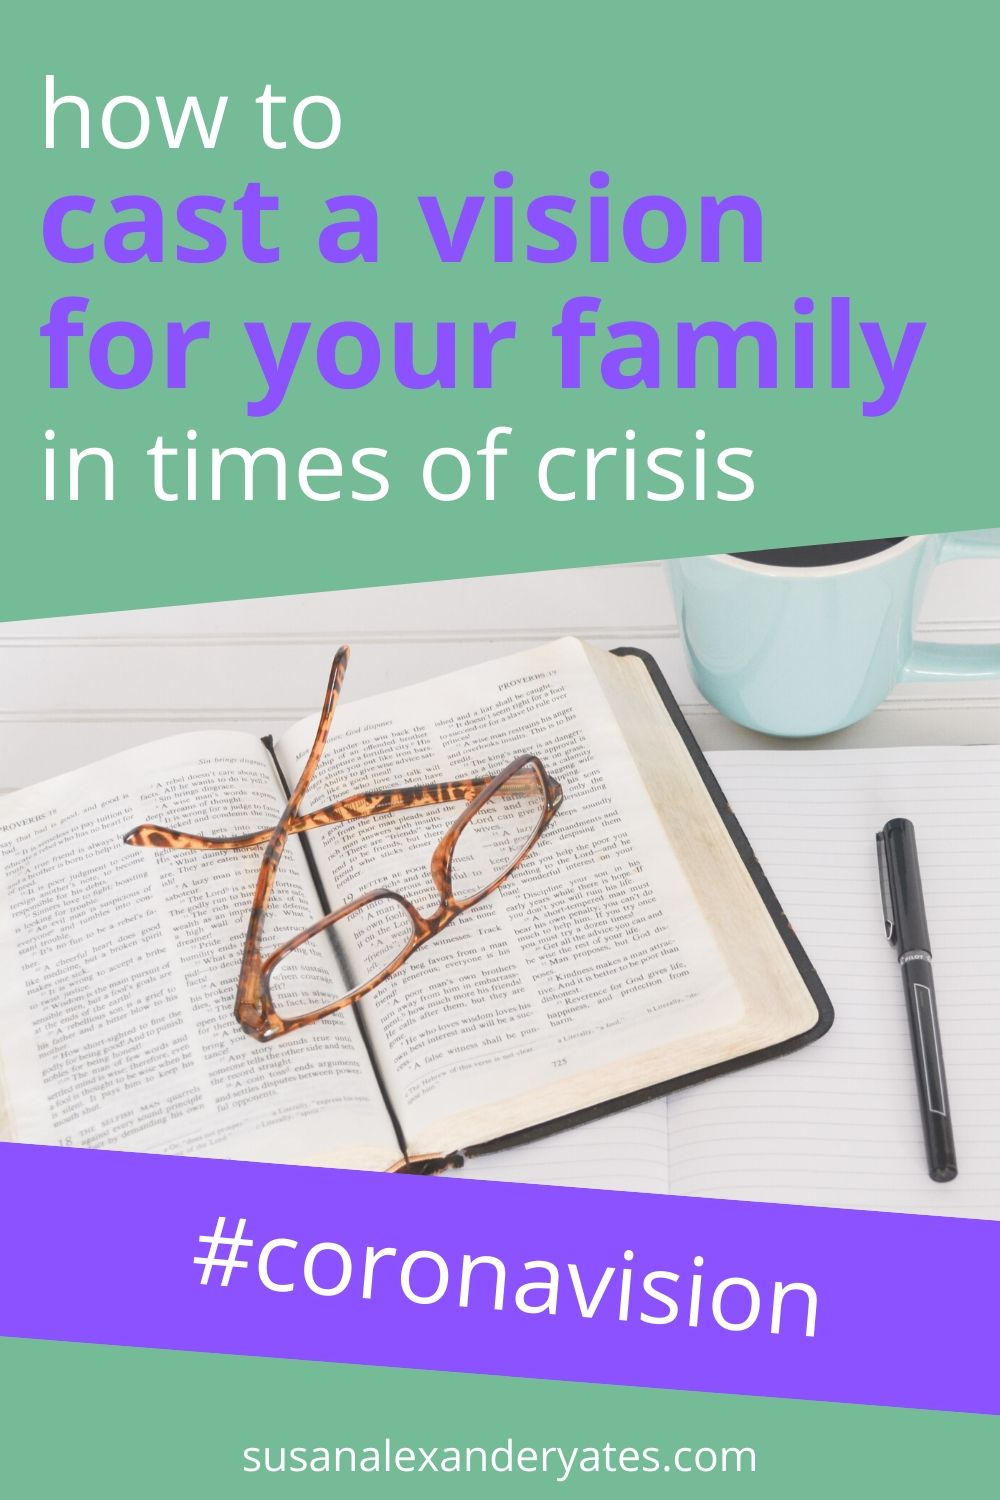 pinterest image: how to cast a vision for your family in times of crisis